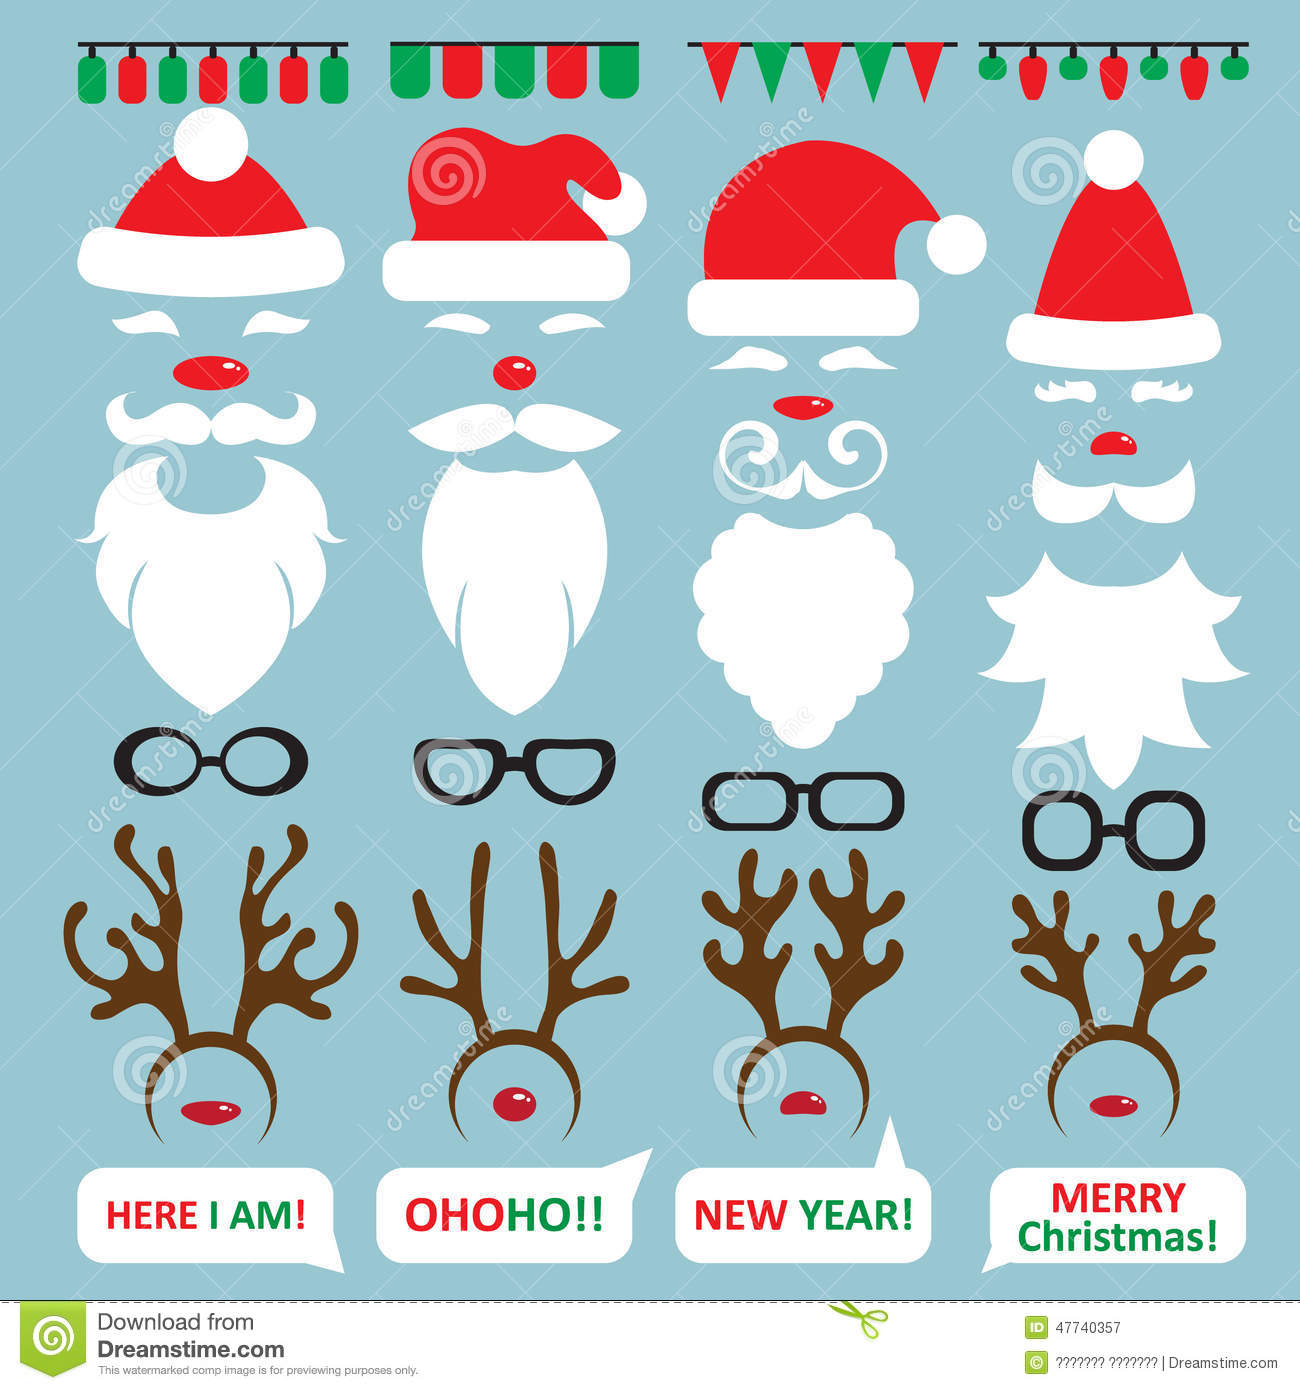 Christmas Photo Booth and scrapbooking vector set